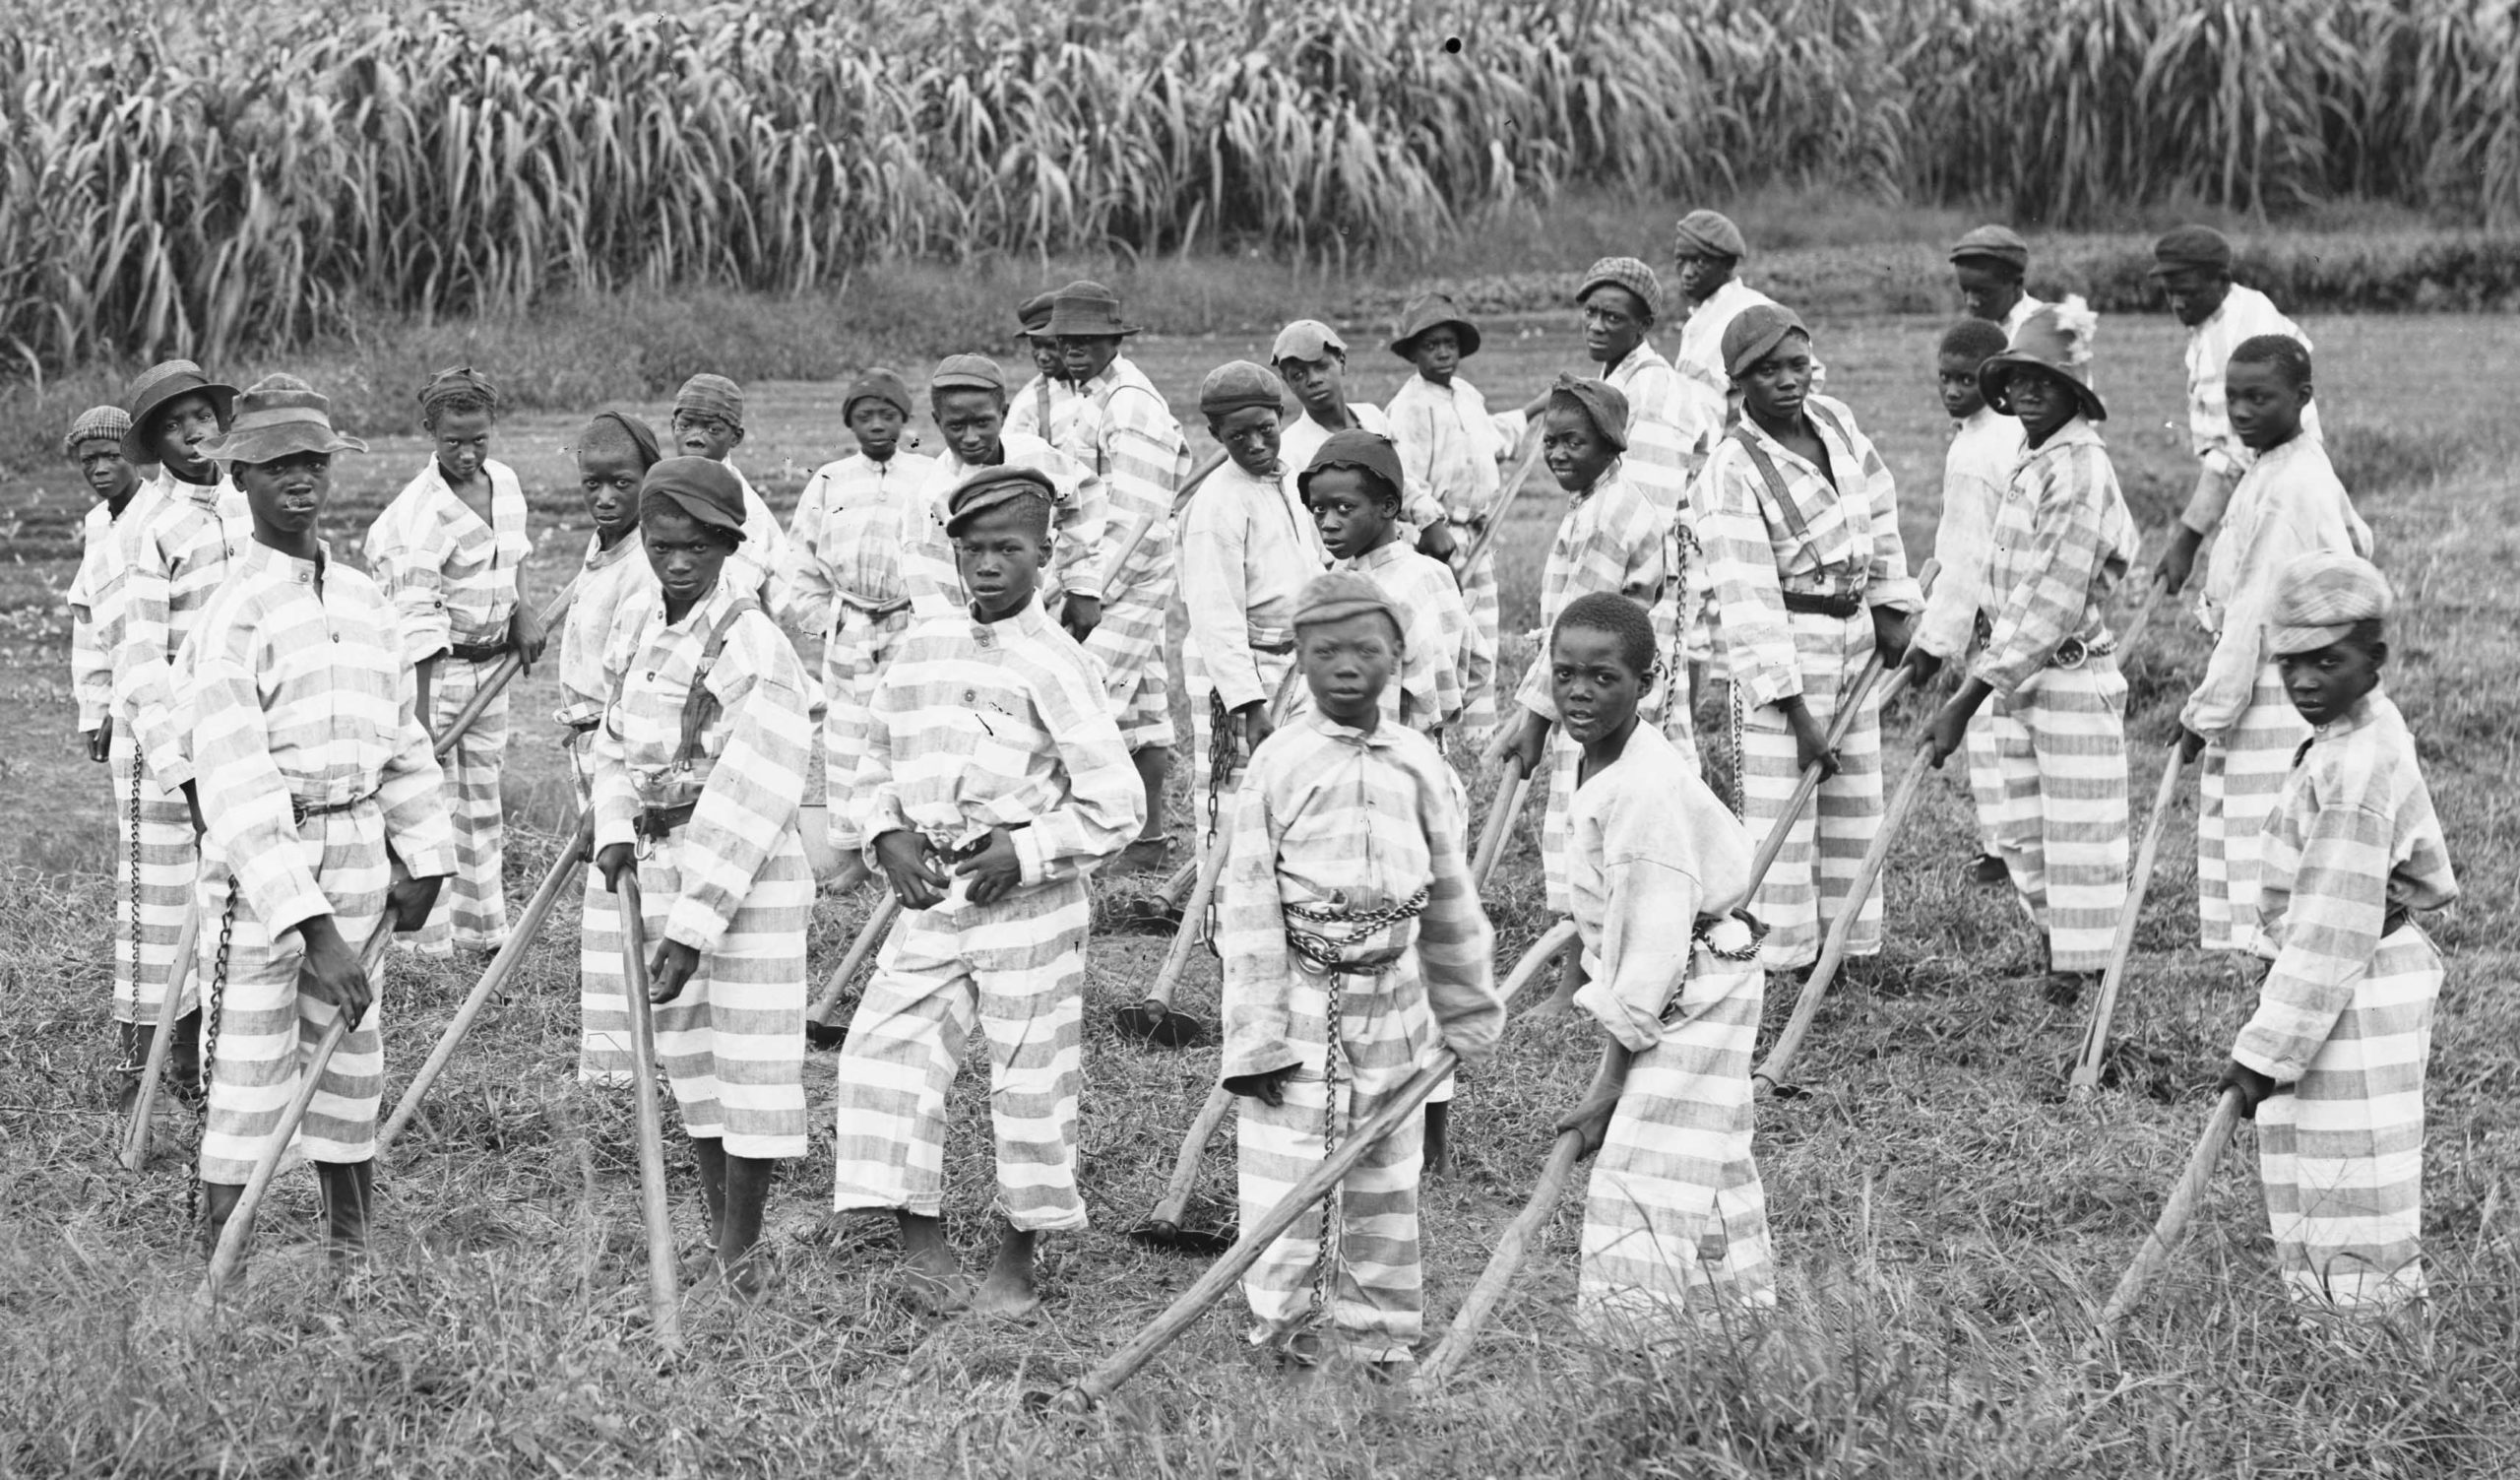 Black Children on Chain Gang, ca. 1900.